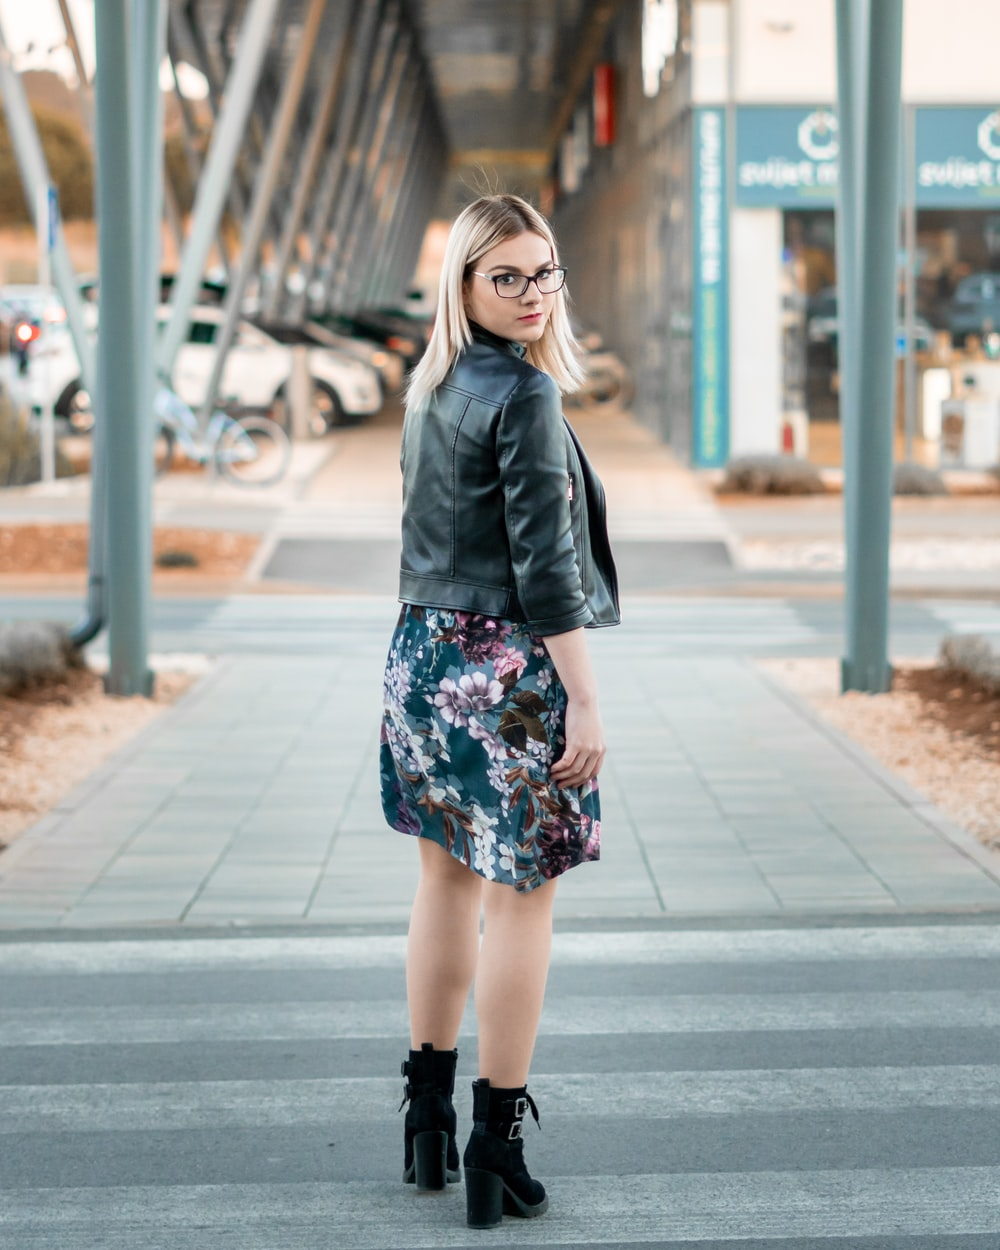 woman in black leather jacket standing on sidewalk during daytime